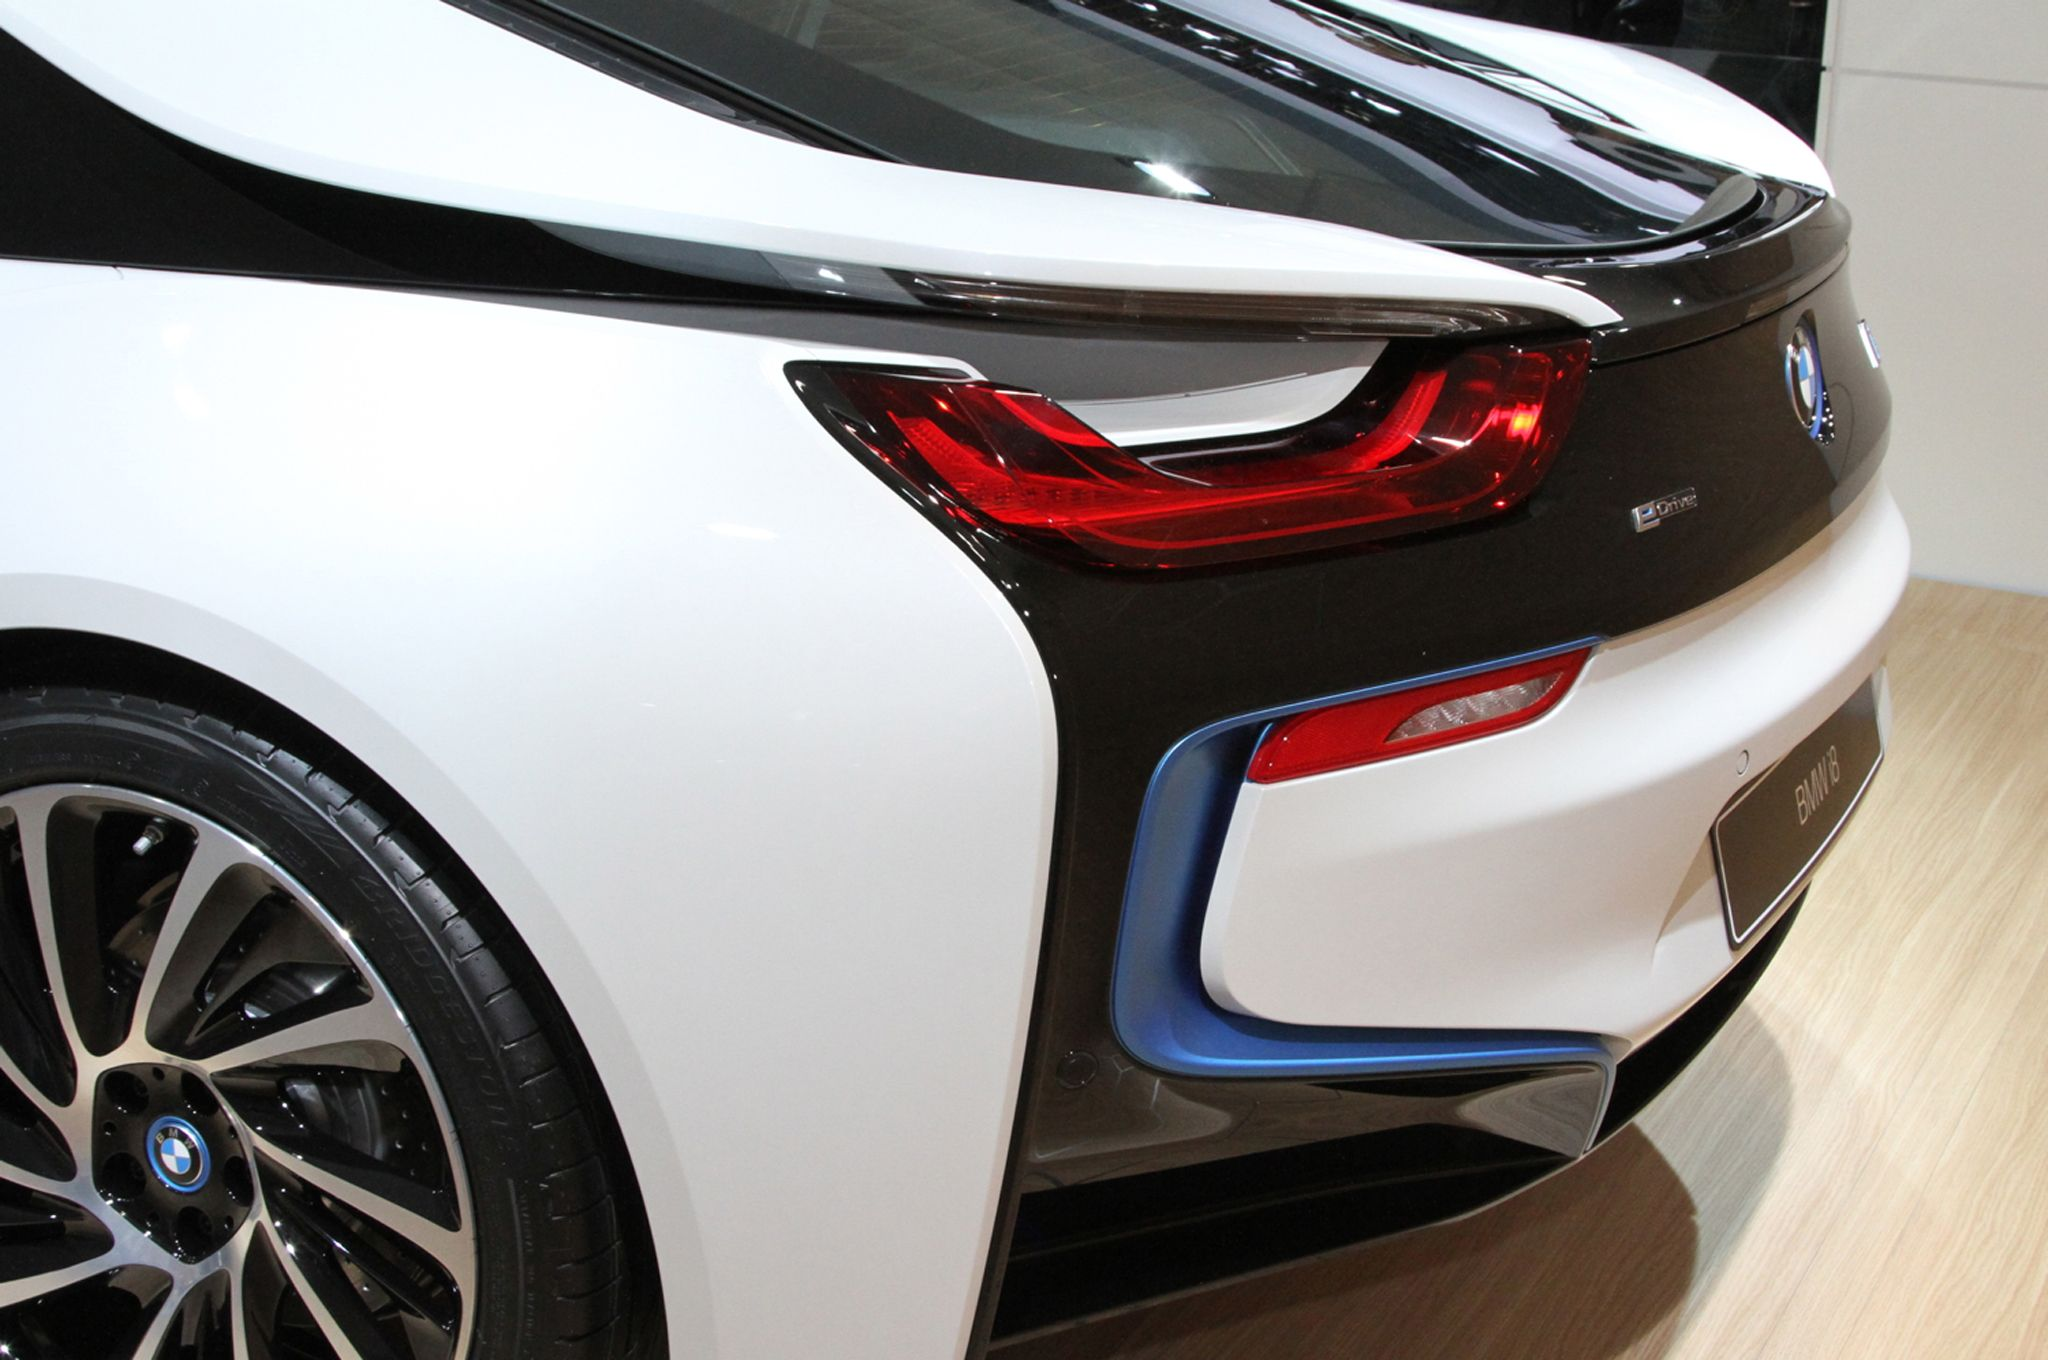 Bmw I8 Taillights Google Search Form Pinterest Bmw I8 Bmw